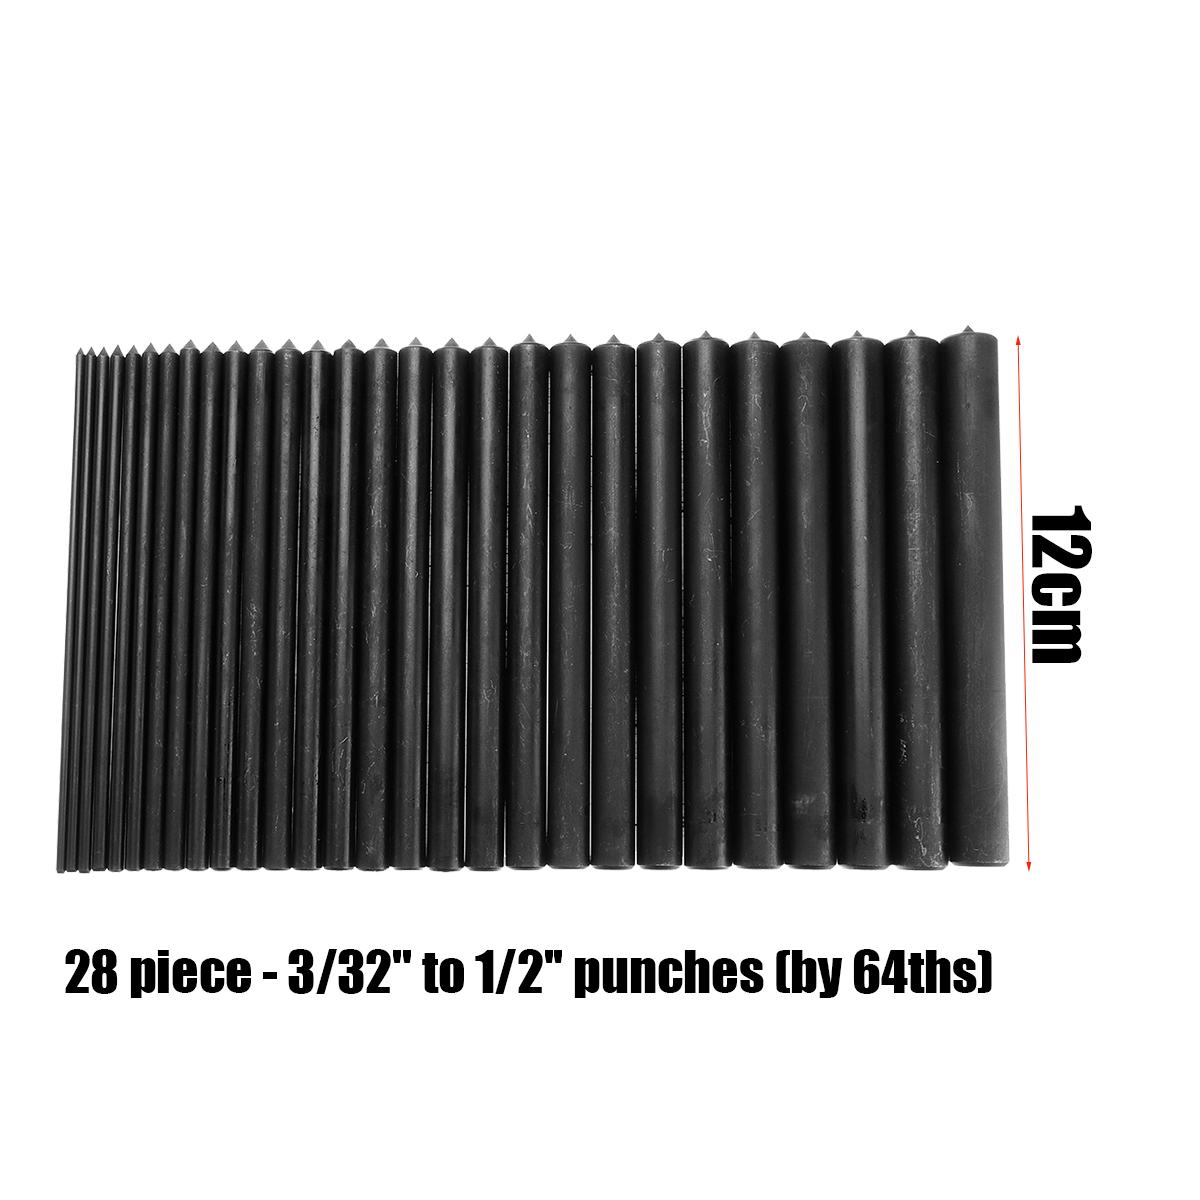 28 Pc Transfer Punch set Carbon STEEL TRANSFER PUNCH MACHINIST THREAD TOOL KIT